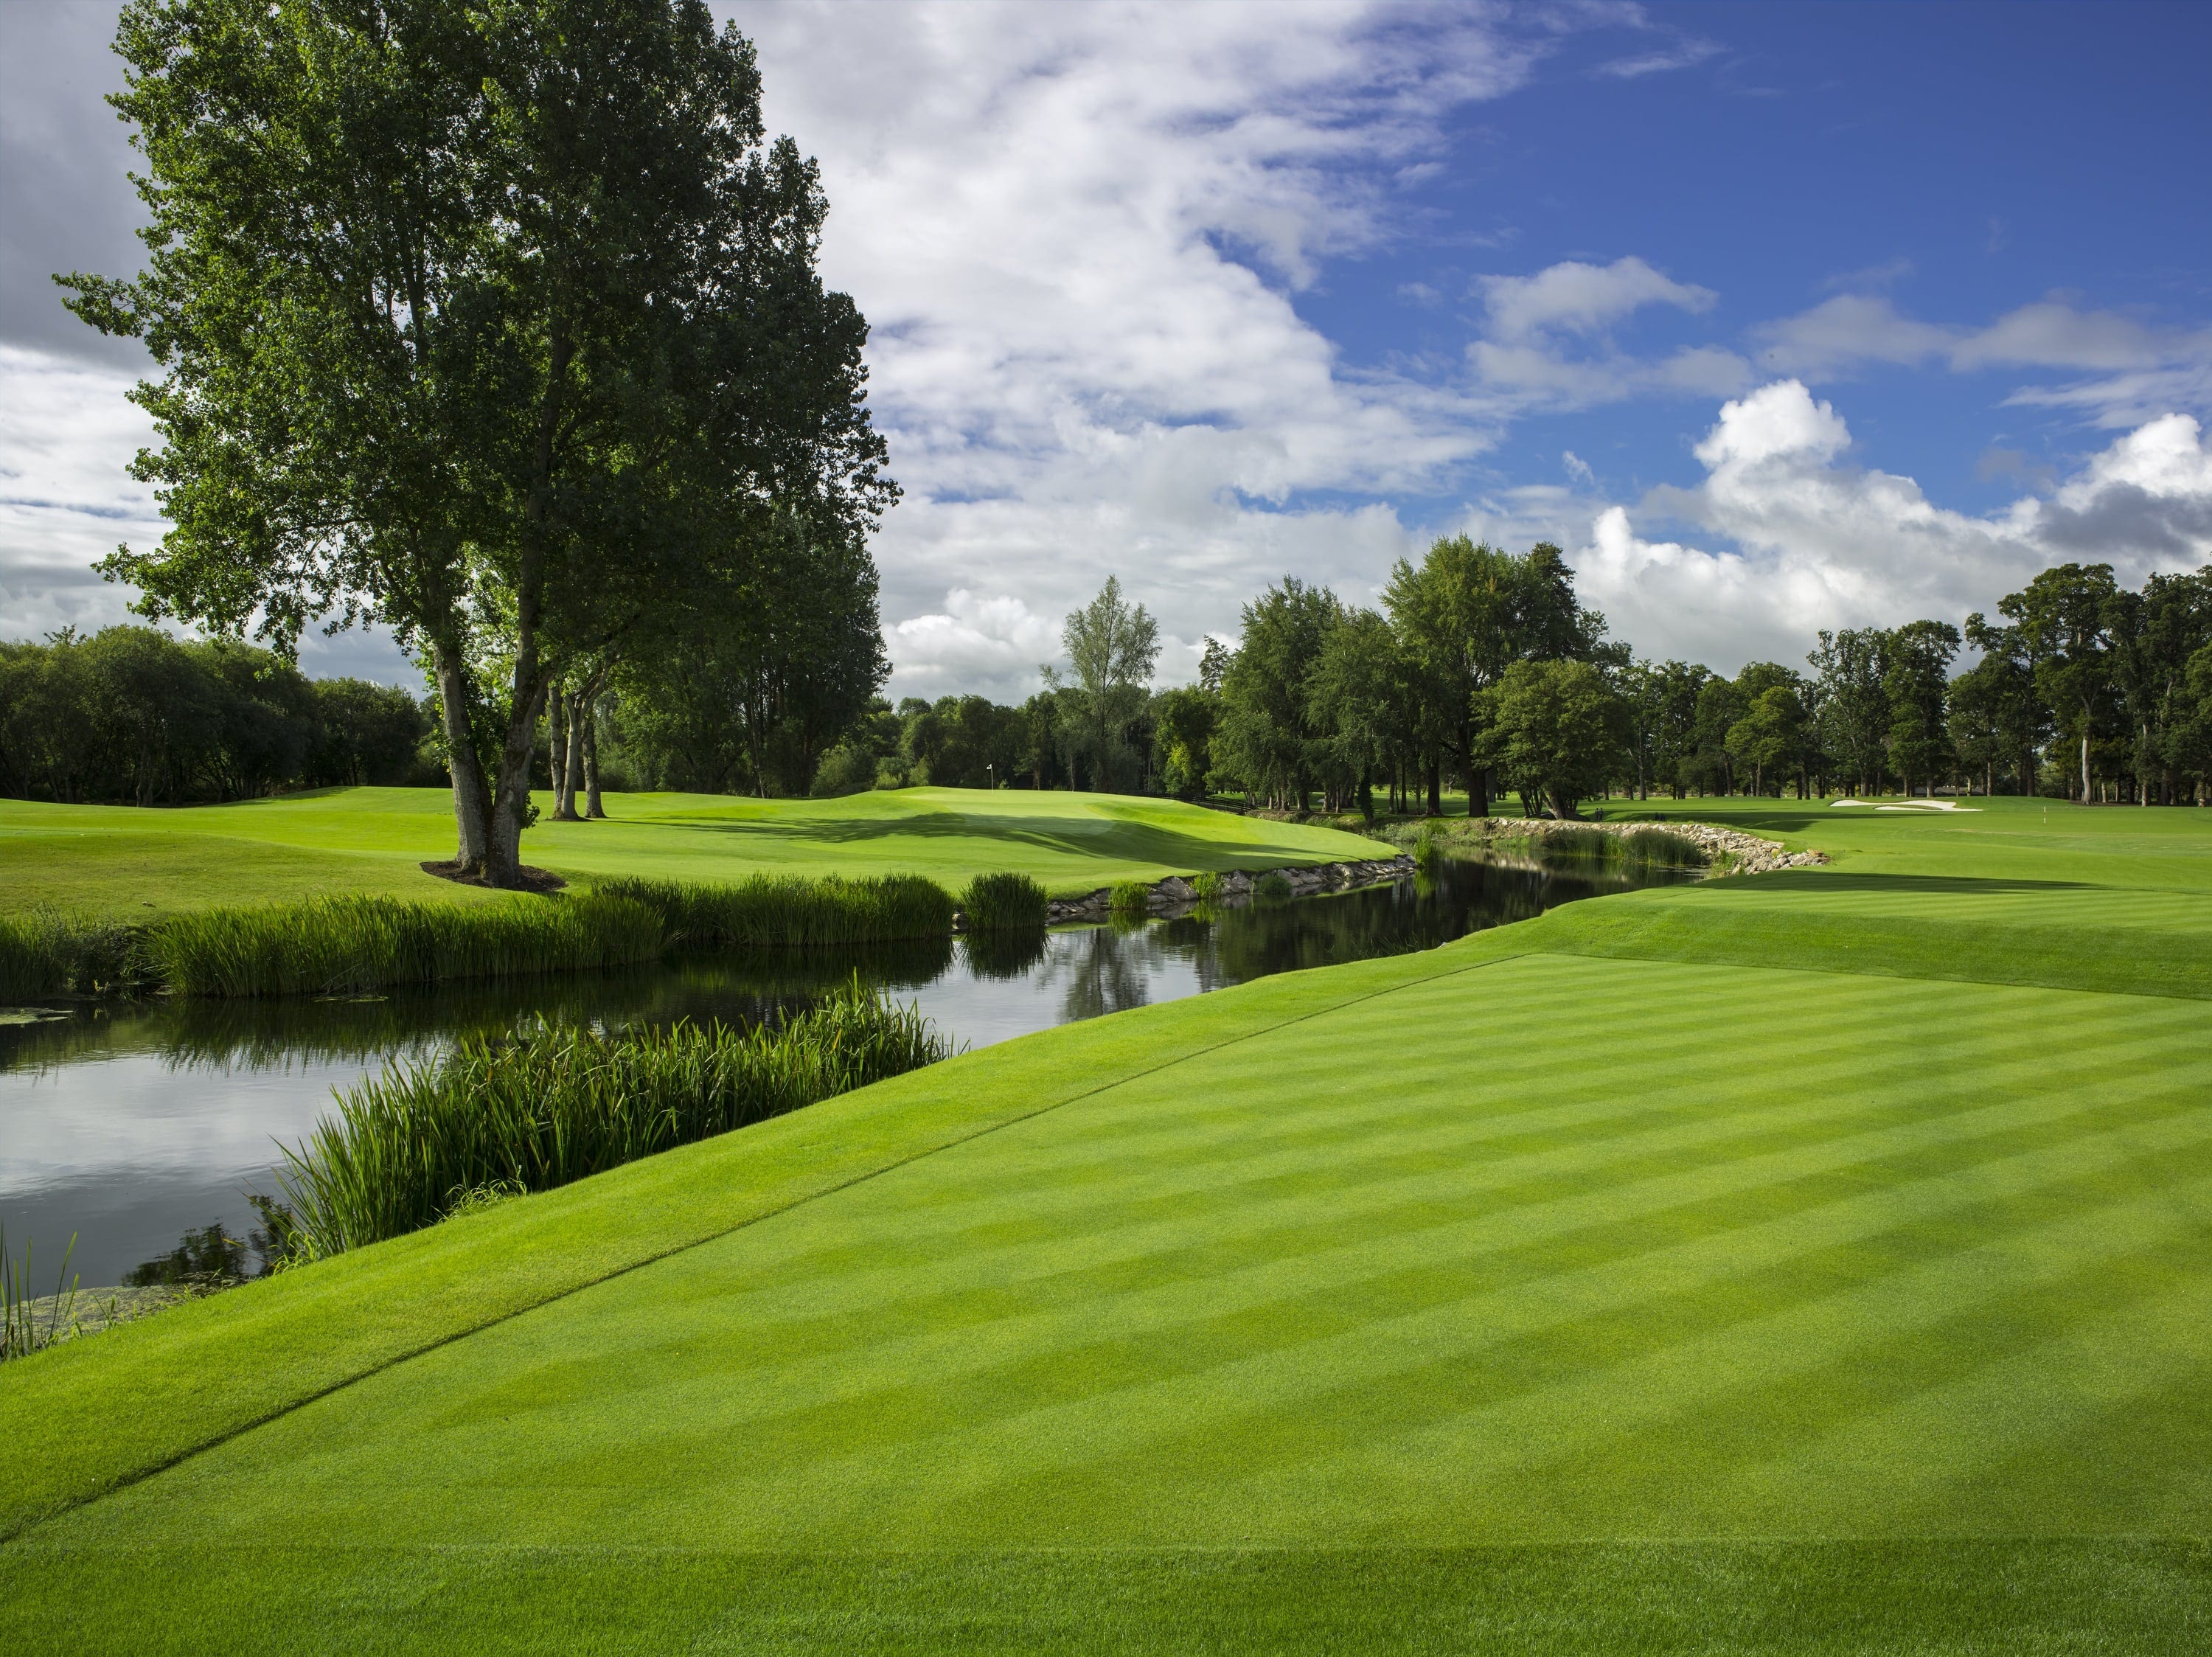 Premiere Irish Golf Resort in Adare, County Limerick, Ireland